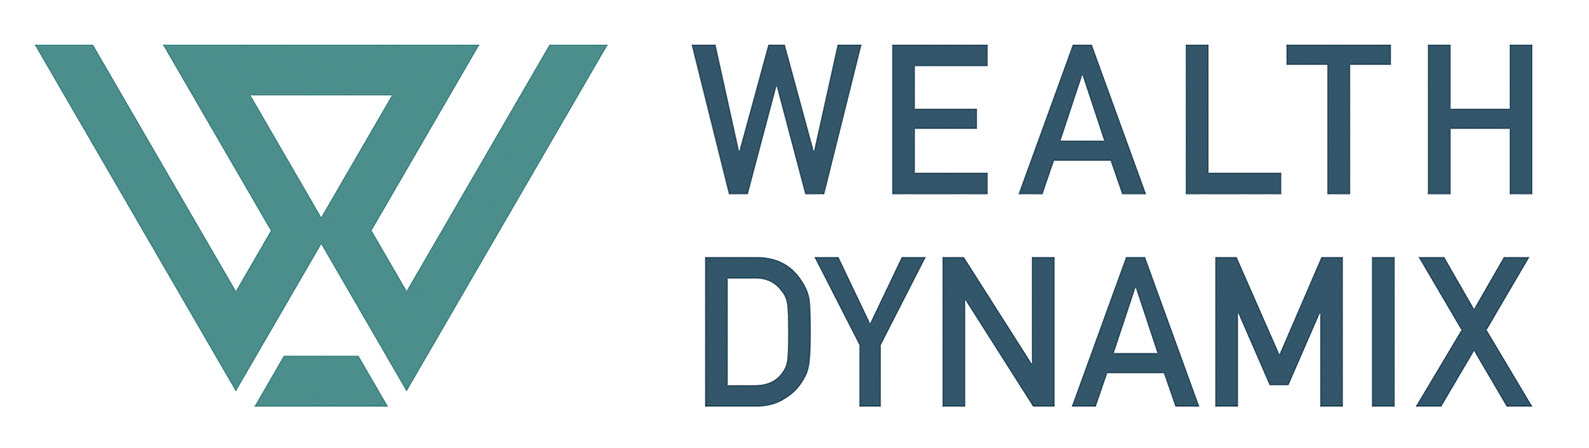 Wealth Dynamix Completes Eighth Year of Growth and Continues Expansion Despite Global Pandemic Challenges